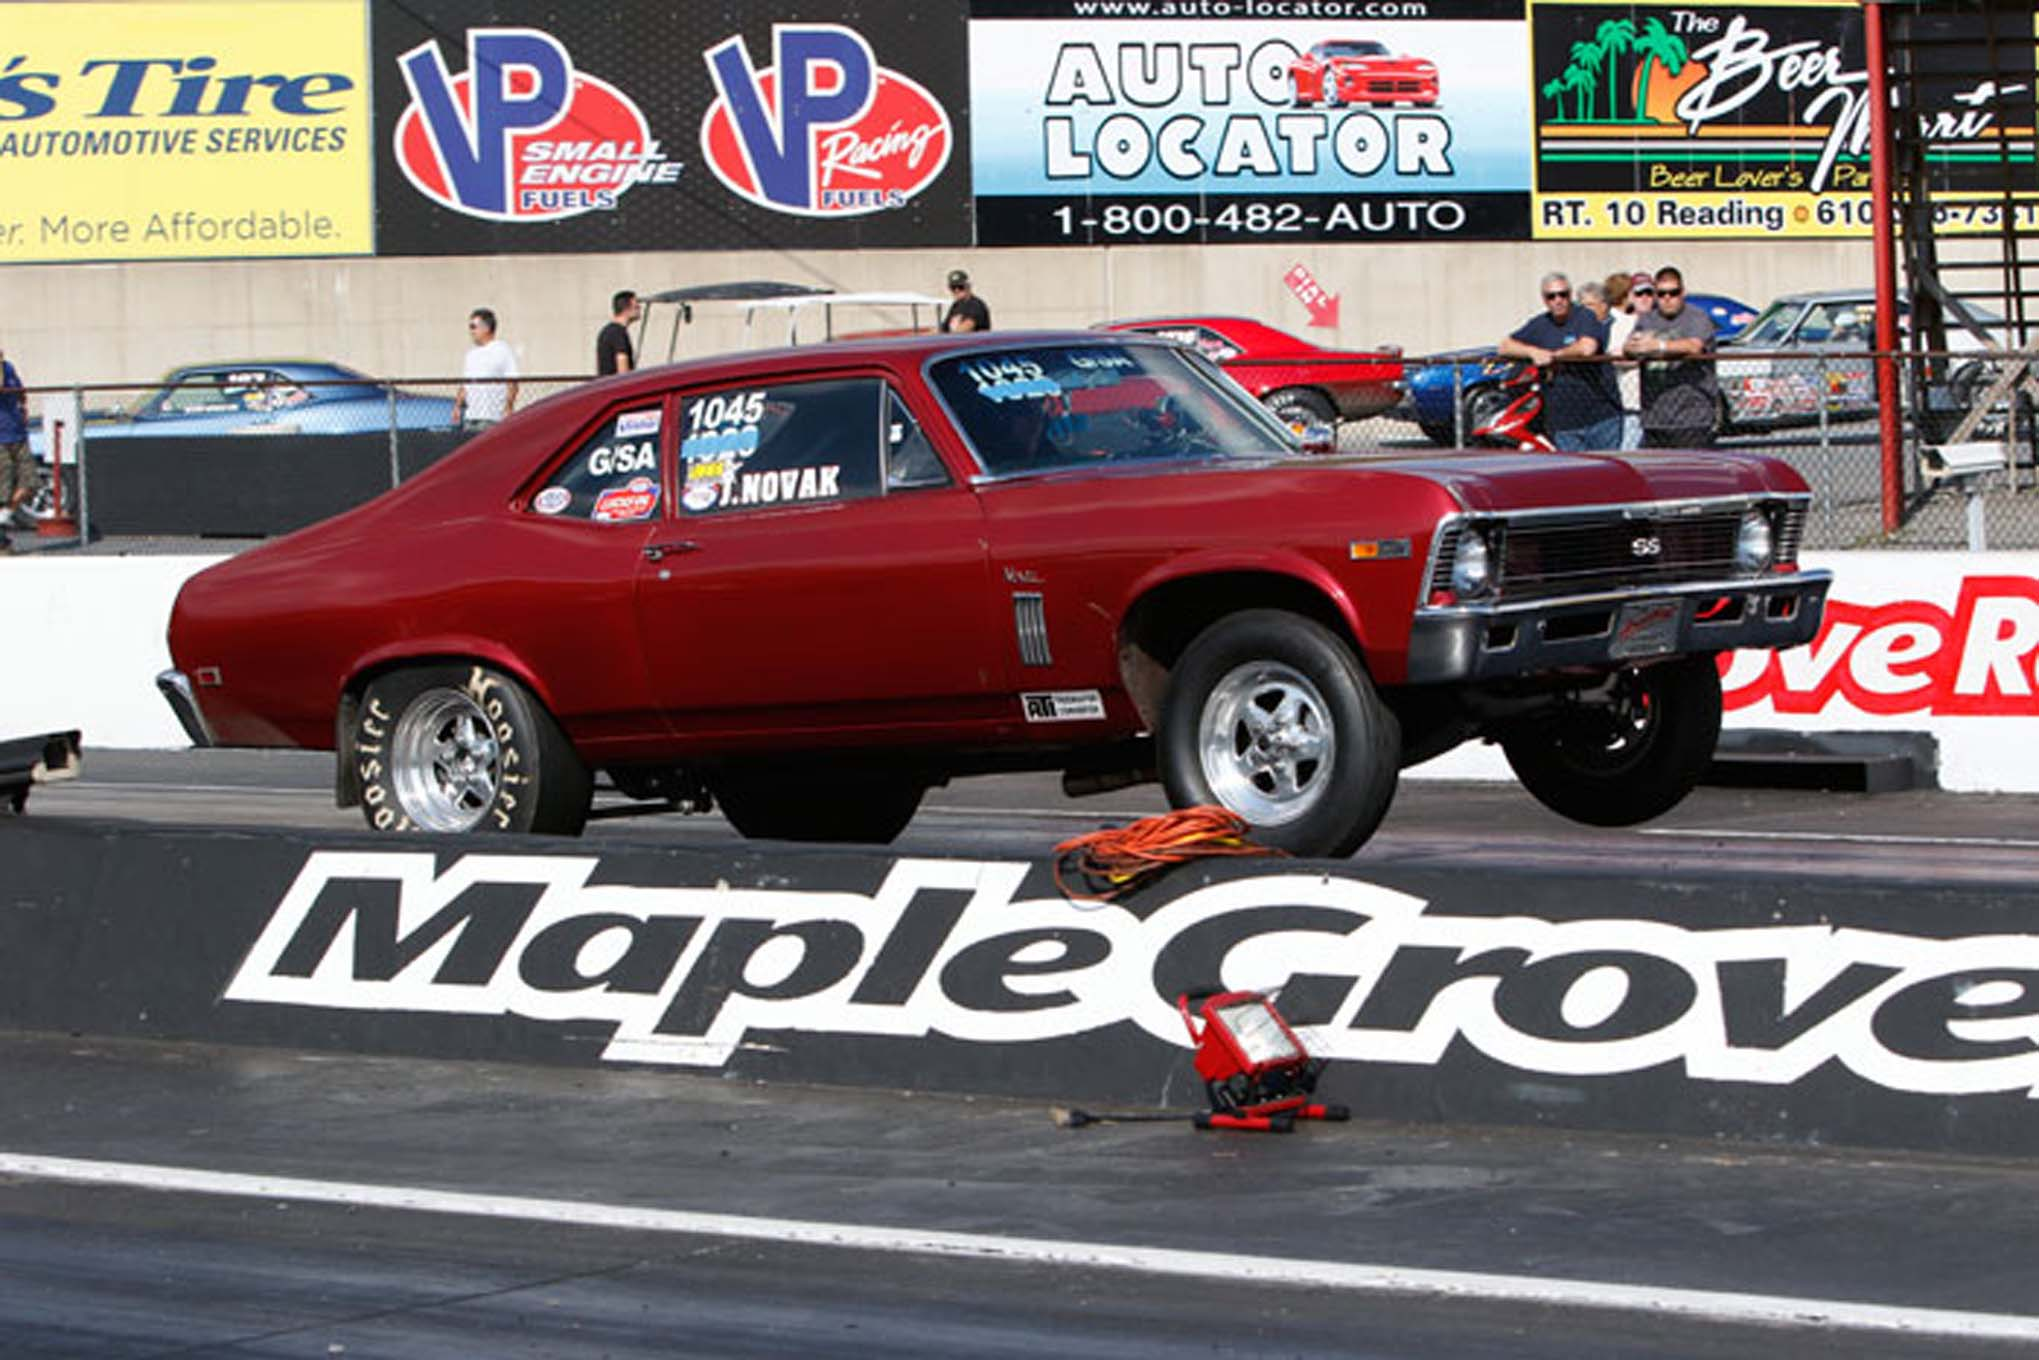 After a long hiatus, Jack Novak has returned to Stock Eliminator with this small-block 350 Nova.